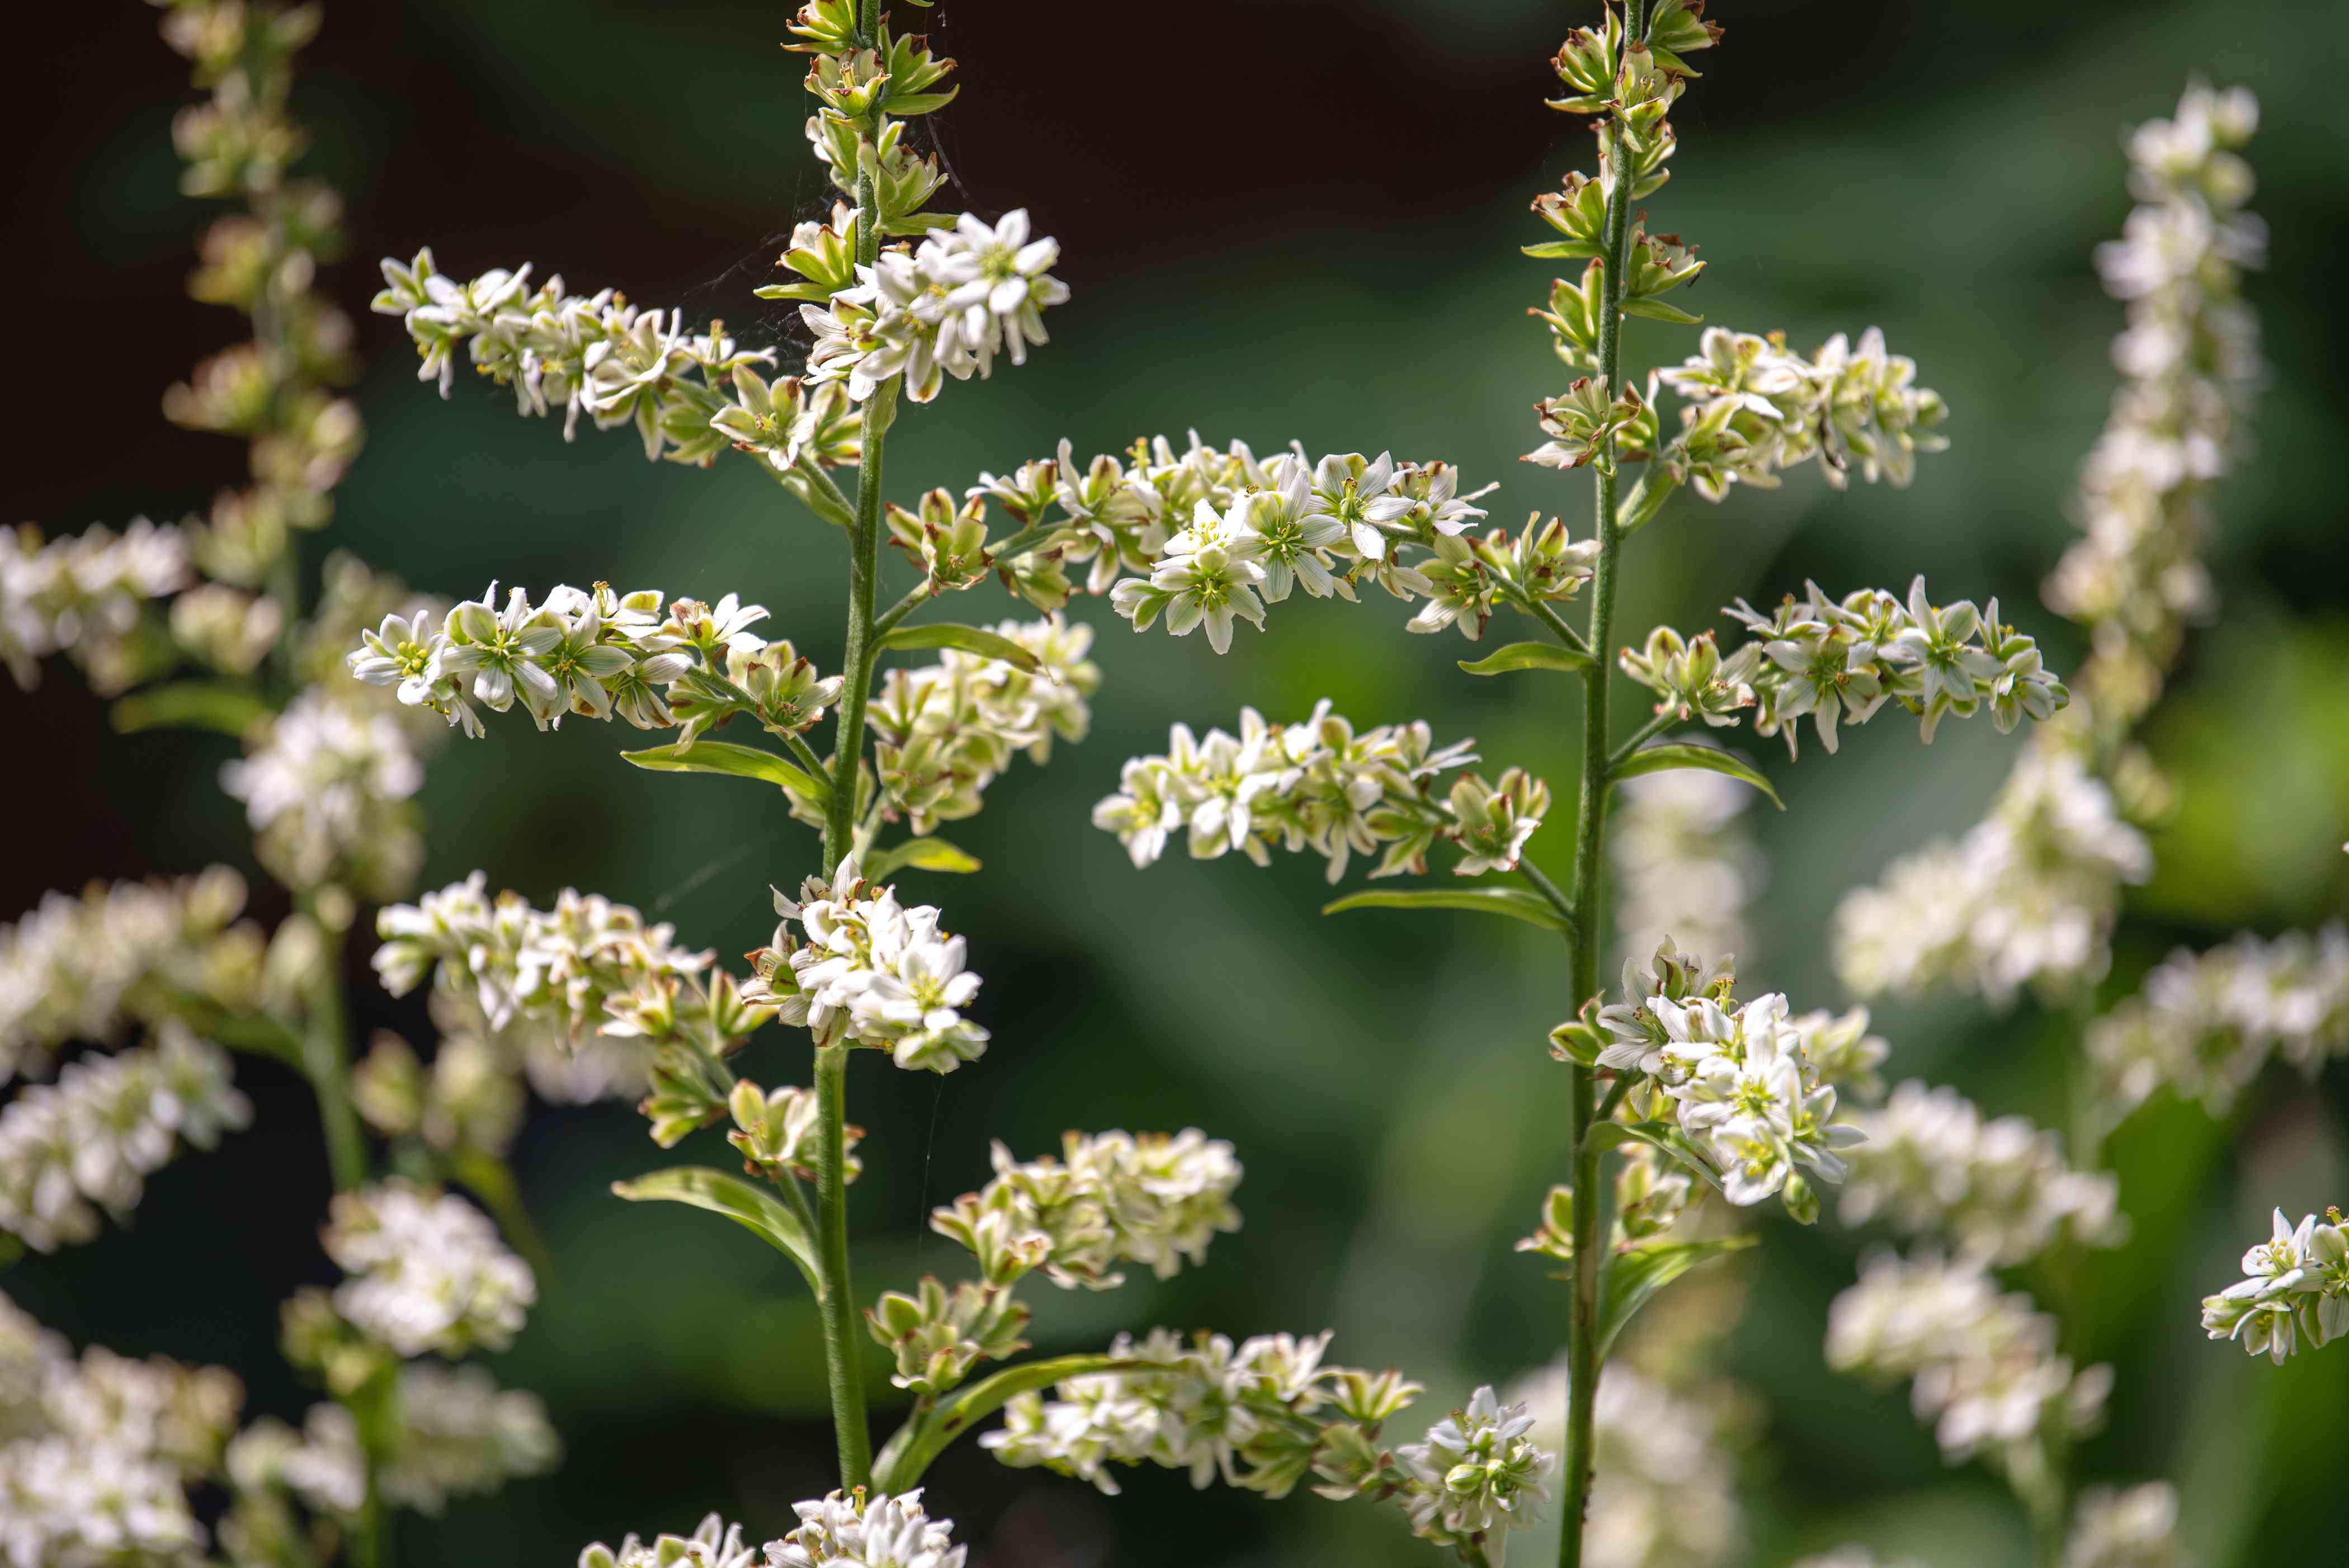 False hellebore plants with thin stems and small white flower panicles closeup